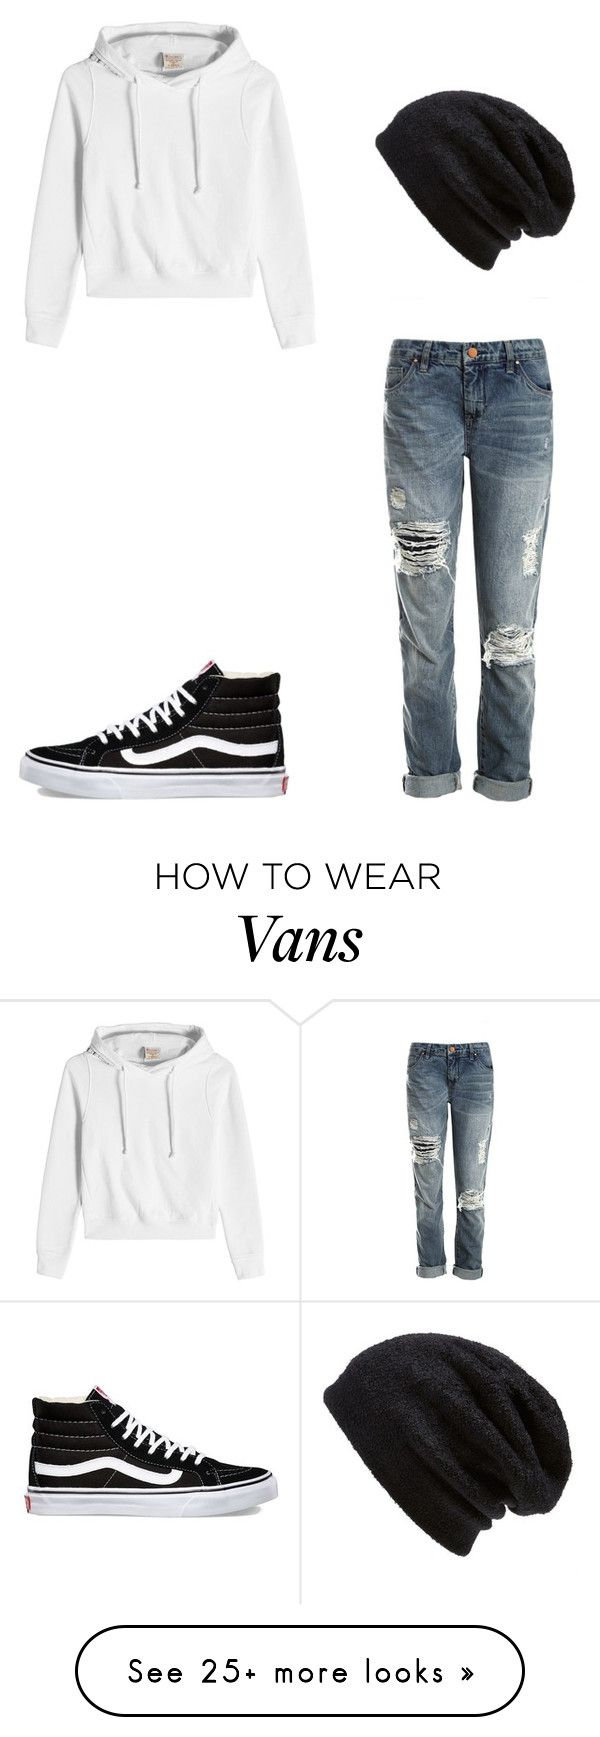 """Untitled #238"" by lockwoodzaki on Polyvore featuring Sans Souci, Vans, Vetements and Barefoot Dreams"